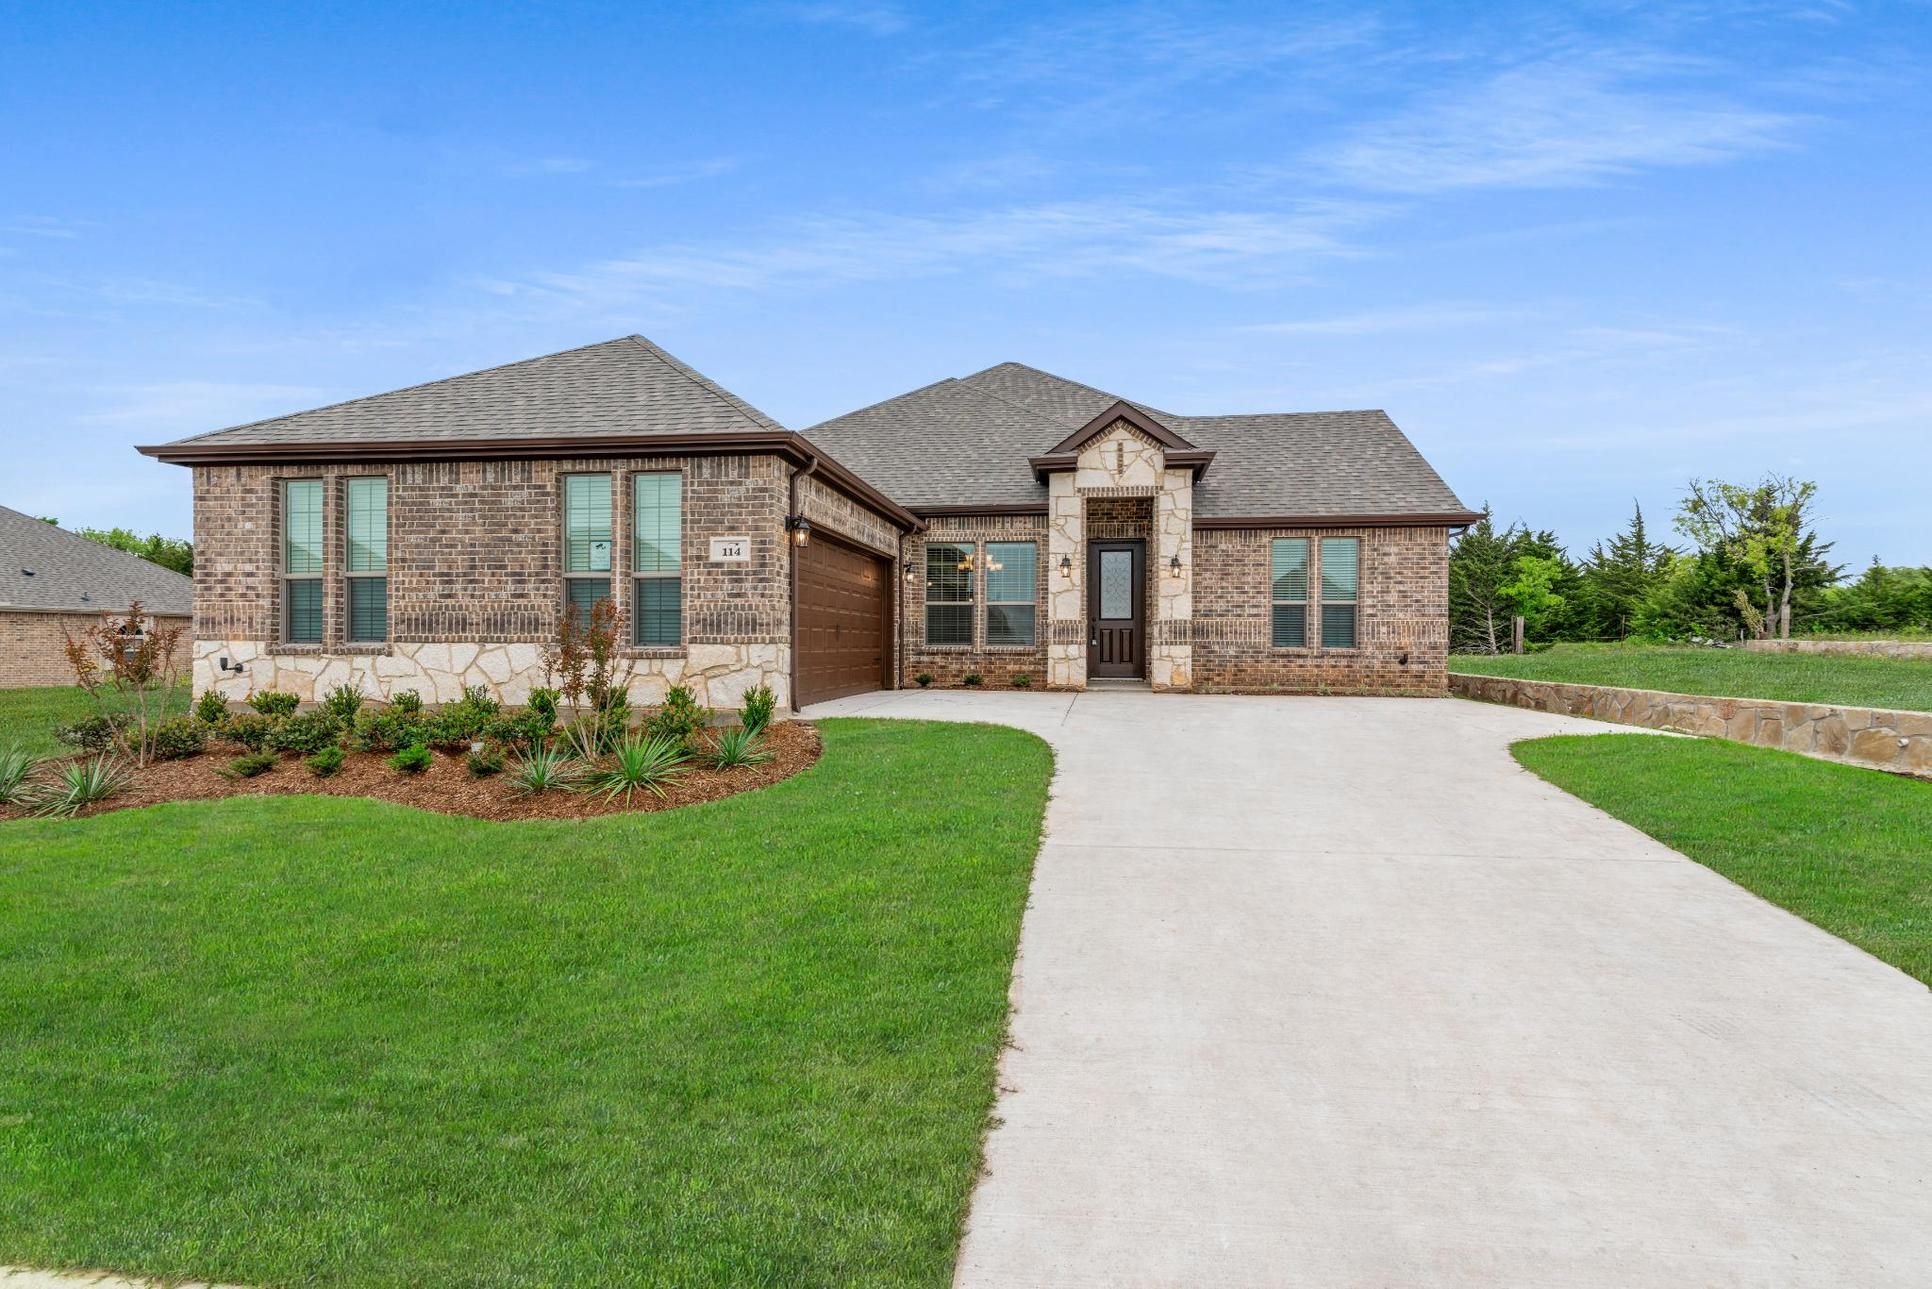 Exterior:2404 A with Stone